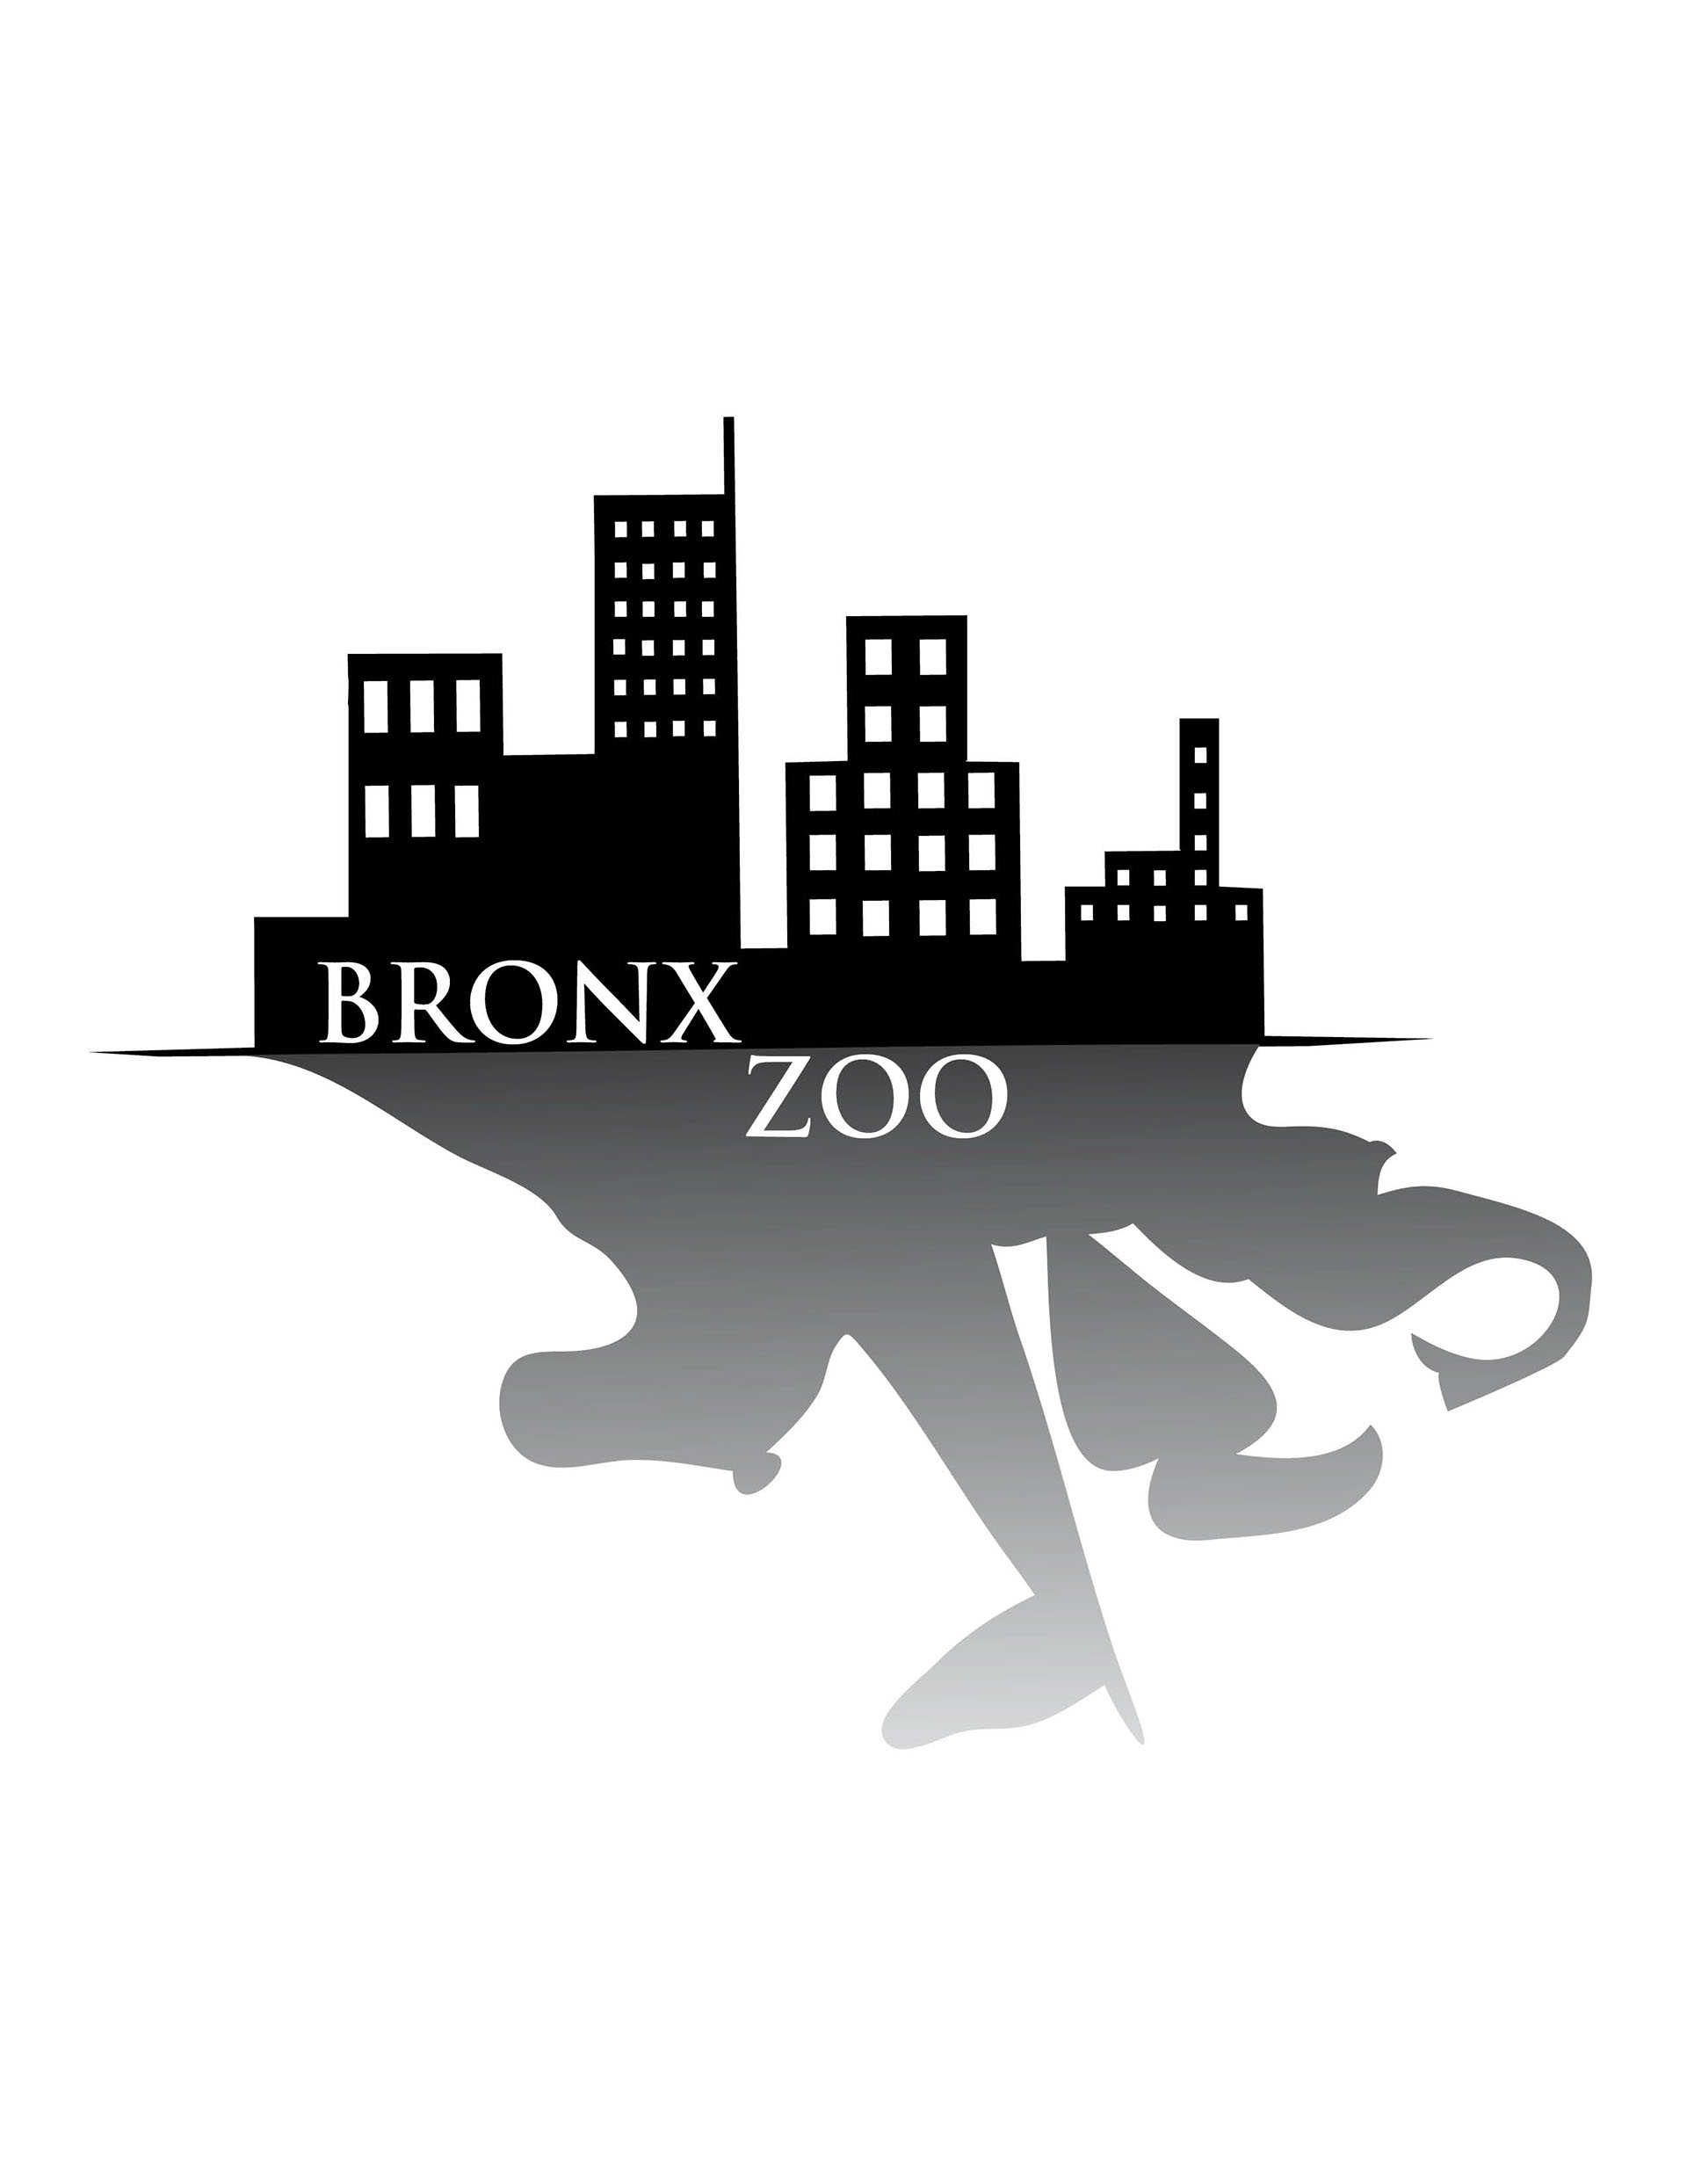 Bronx zoo clipart png stock Bronx Zoo Logo Practice on Behance png stock